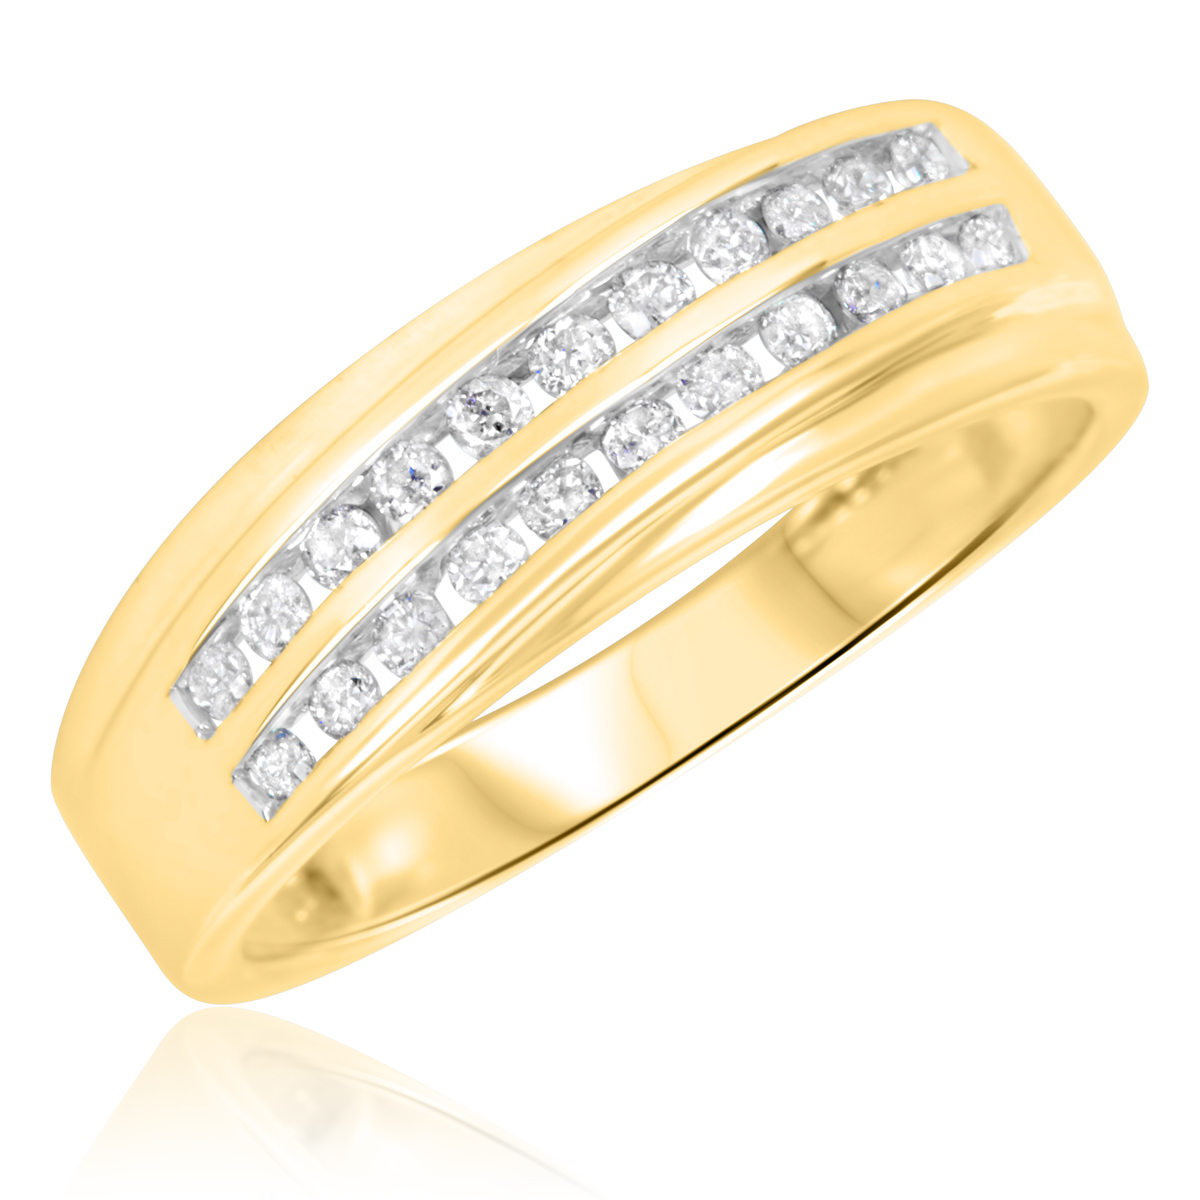 1/3 Carat T.W. Round Cut Diamond Ladies Wedding Band 10K Yellow Gold- Size 8